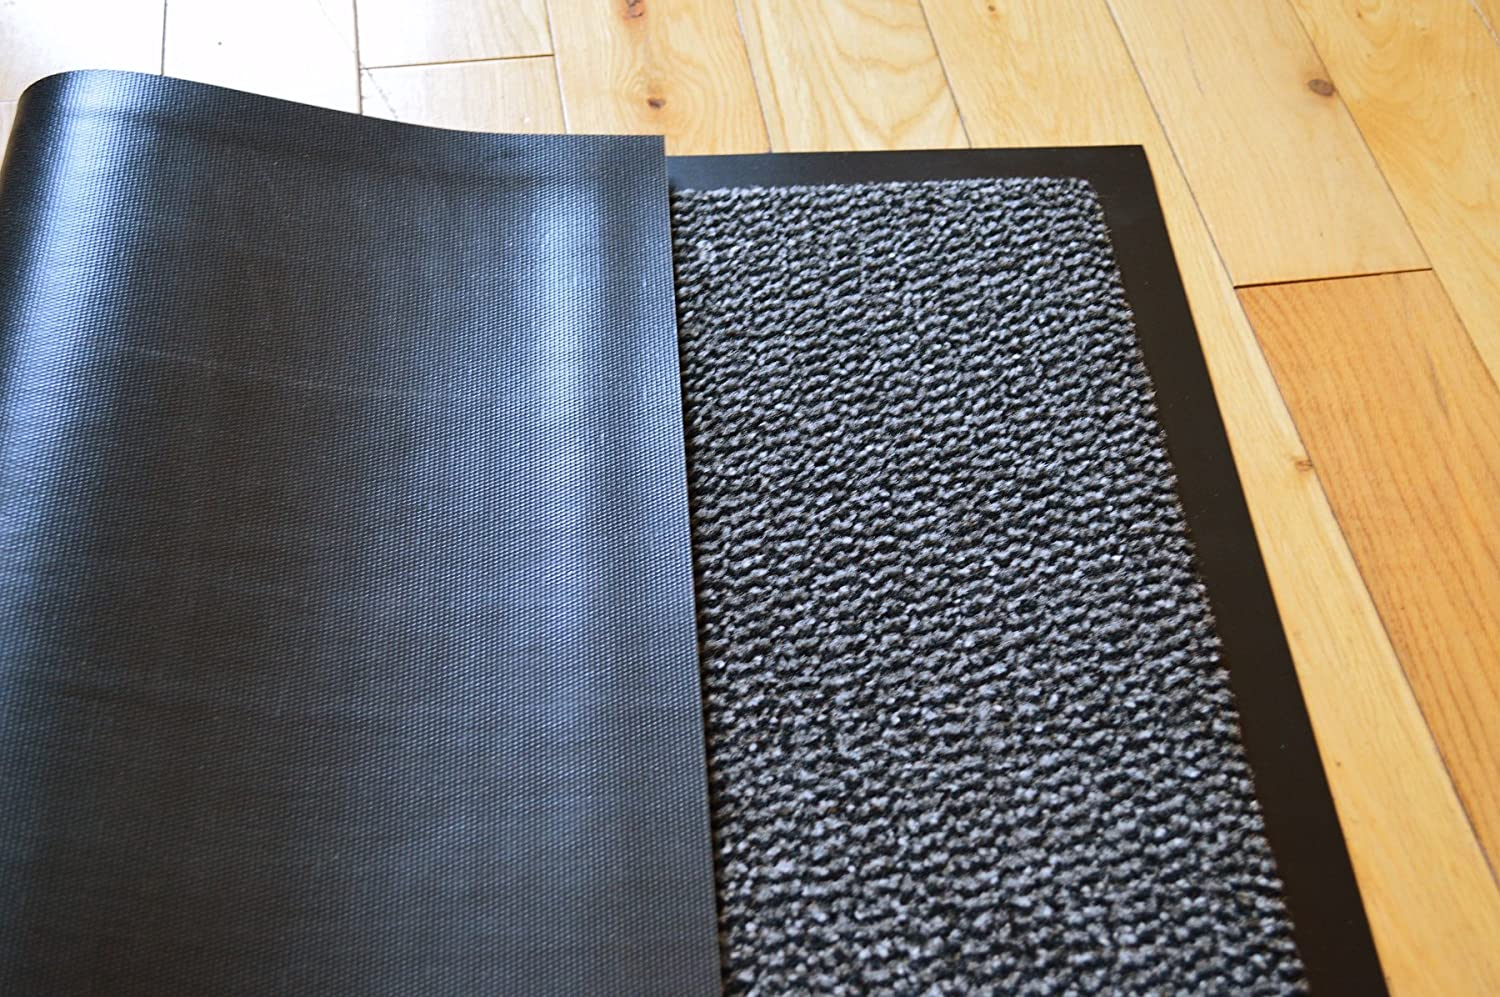 BIG EXTRA LARGE GREY AND BLACK BARRIER MAT RUBBER EDGED HEAVY DUTY ...